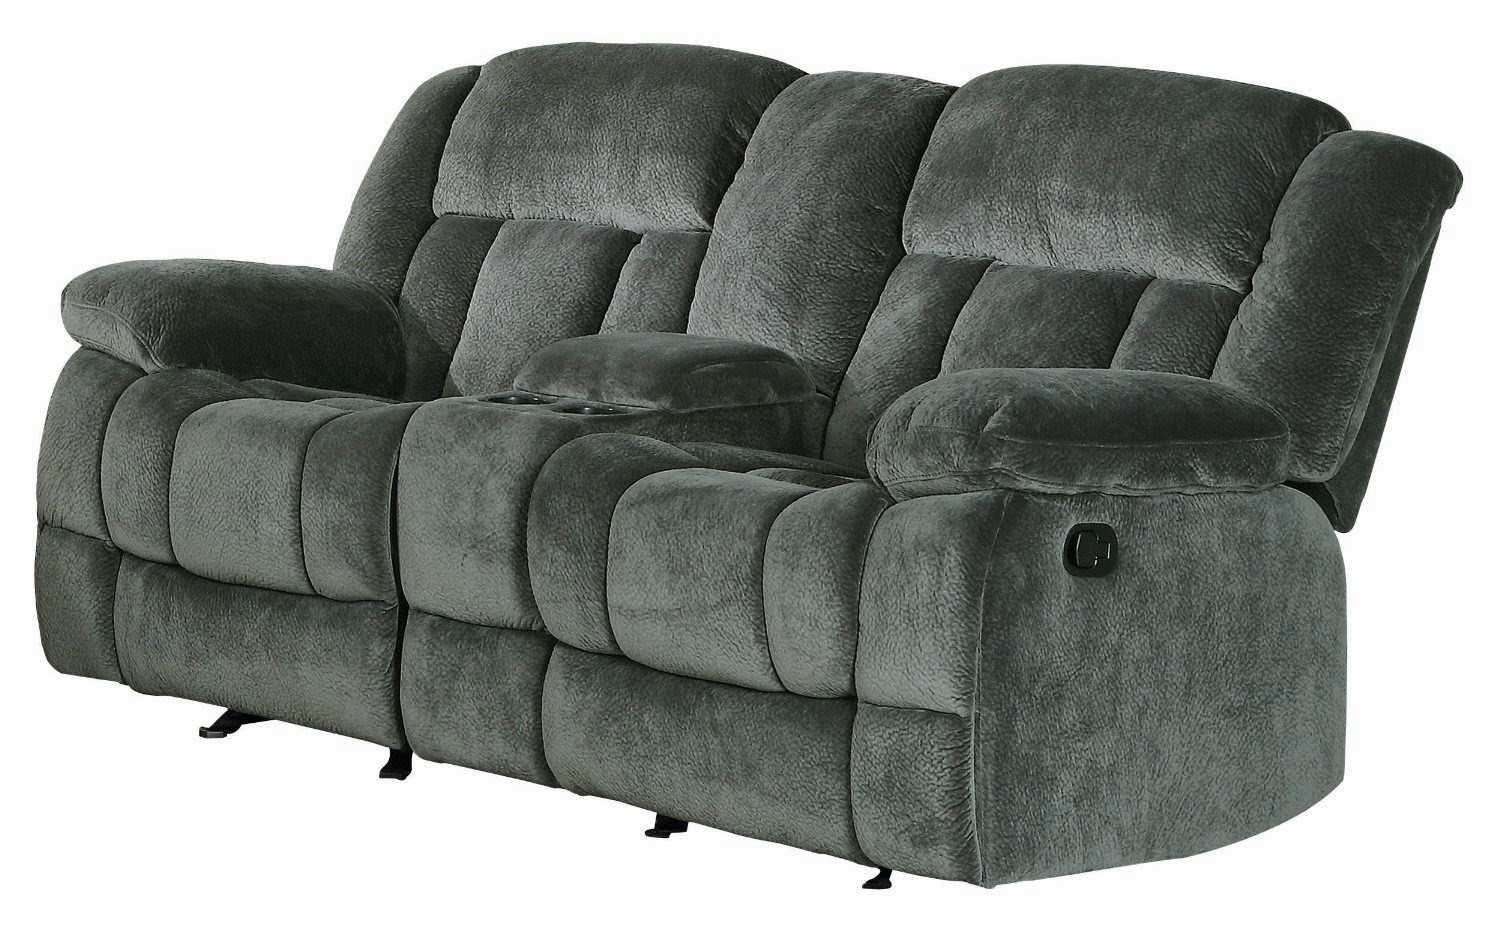 Two Seater Sofa Recliner Bed With Chaise Lounge Perth Reclining Sofas For Sale Cheap Uk